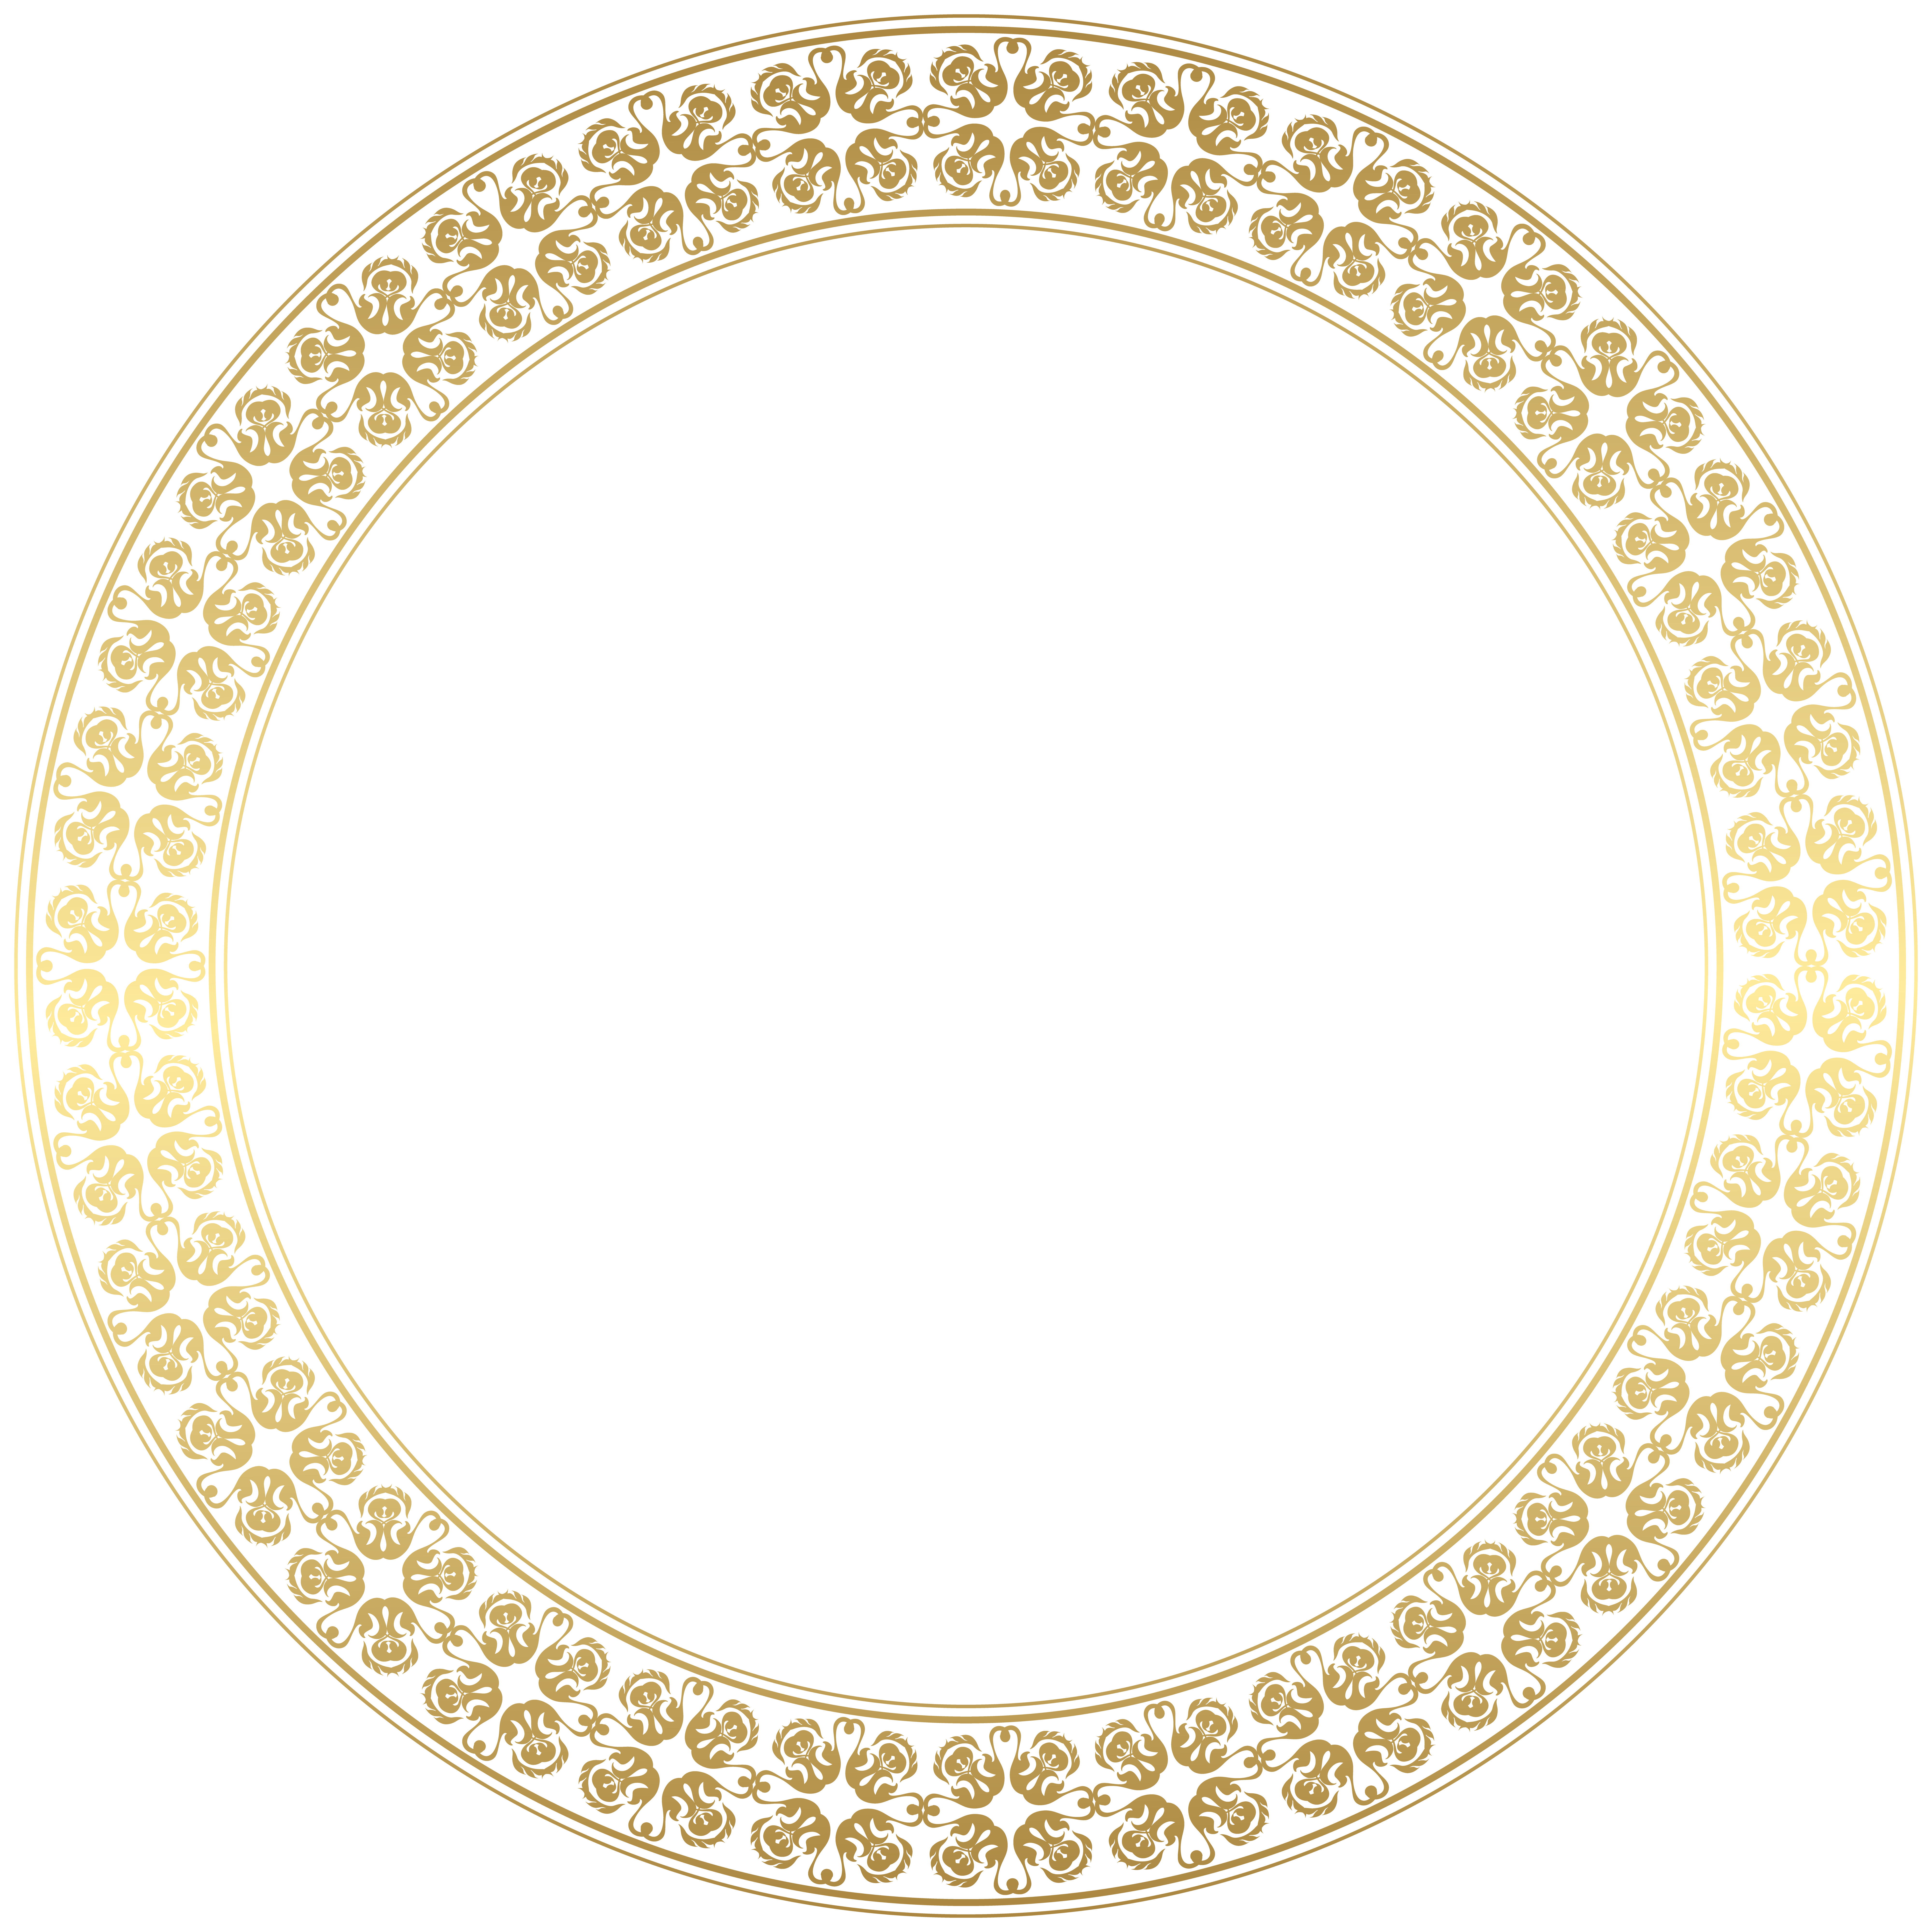 Picture clip art border. Round gold frame png